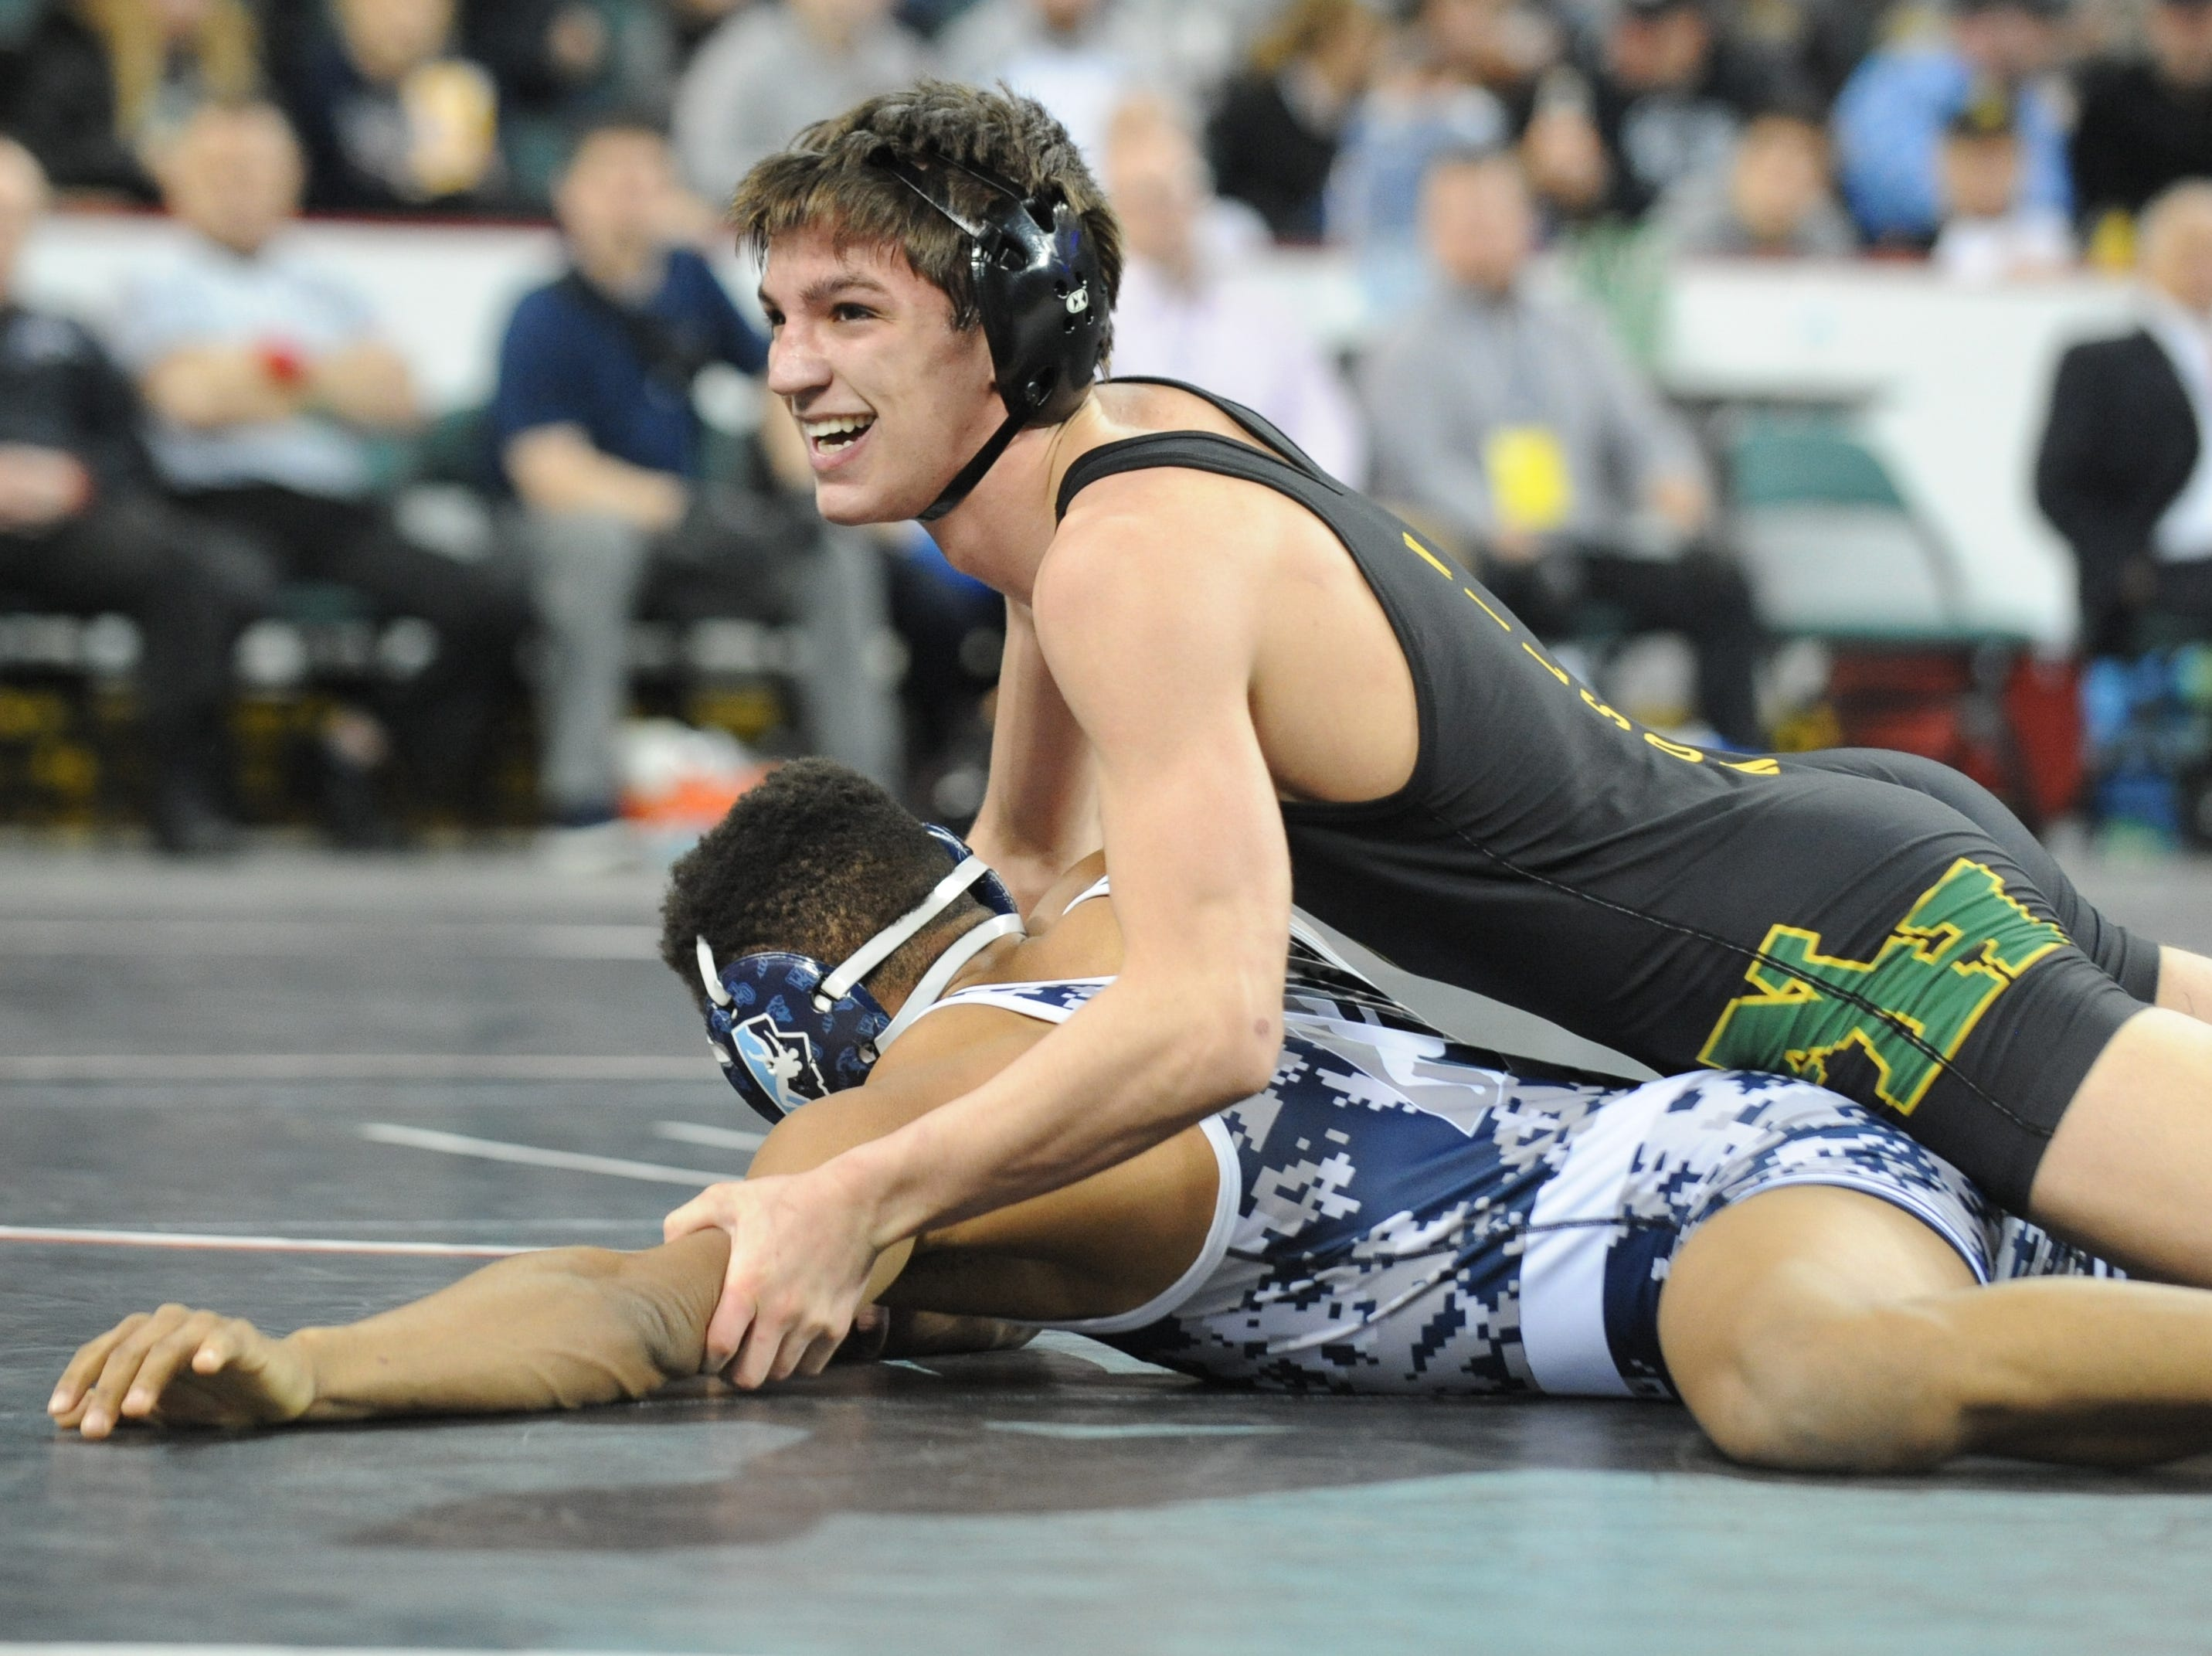 North Hunterdon's Michael Wilson smiles as he defeats West Orange's Colin Morgan in a 160-pound 7th place bout during the NJSIAA Individual Wrestling Championships at Boardwalk Hall in Atlantic City, Saturday, March 2, 2019.